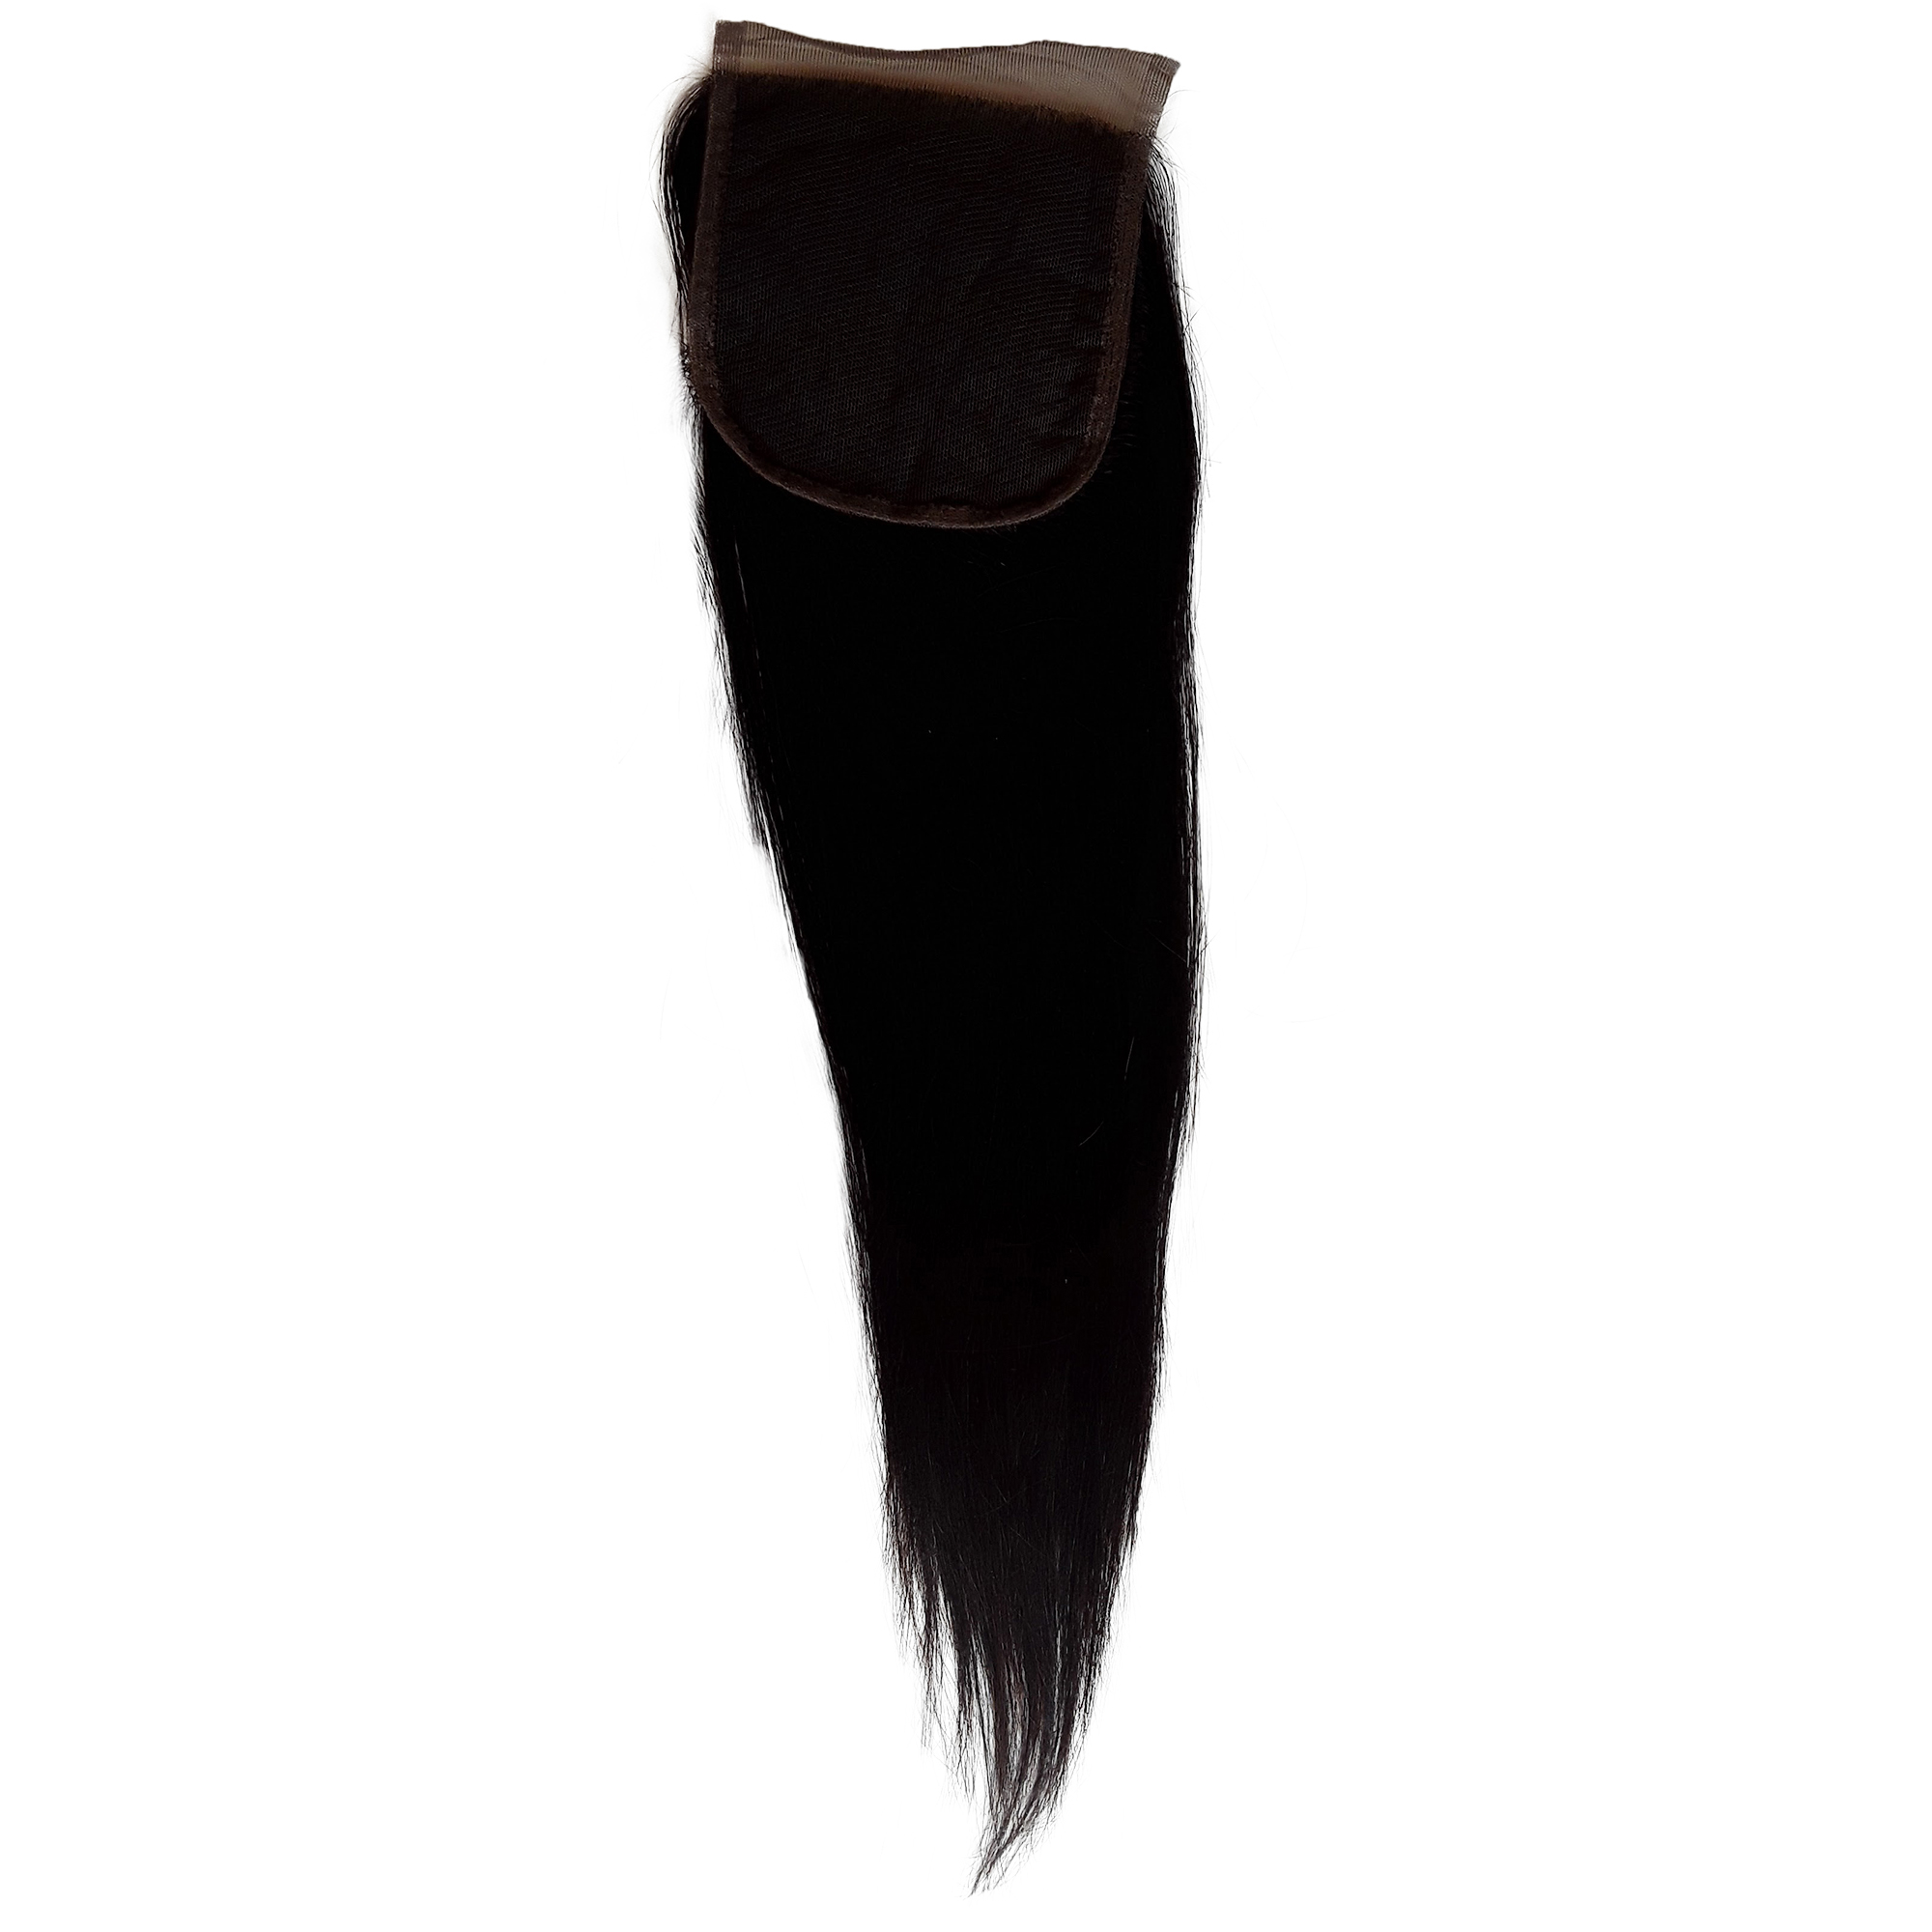 (Peruvian 100% human hair straight 100g per hair) 100% Unprocessed Human Remy Peruvian Hair, Lace Closure (4×4″) straight colour 1B, Highest Quality Rating of 8A, Sizes 12 inches to 18 inches. If you're looking for natural, quality hair to fill…